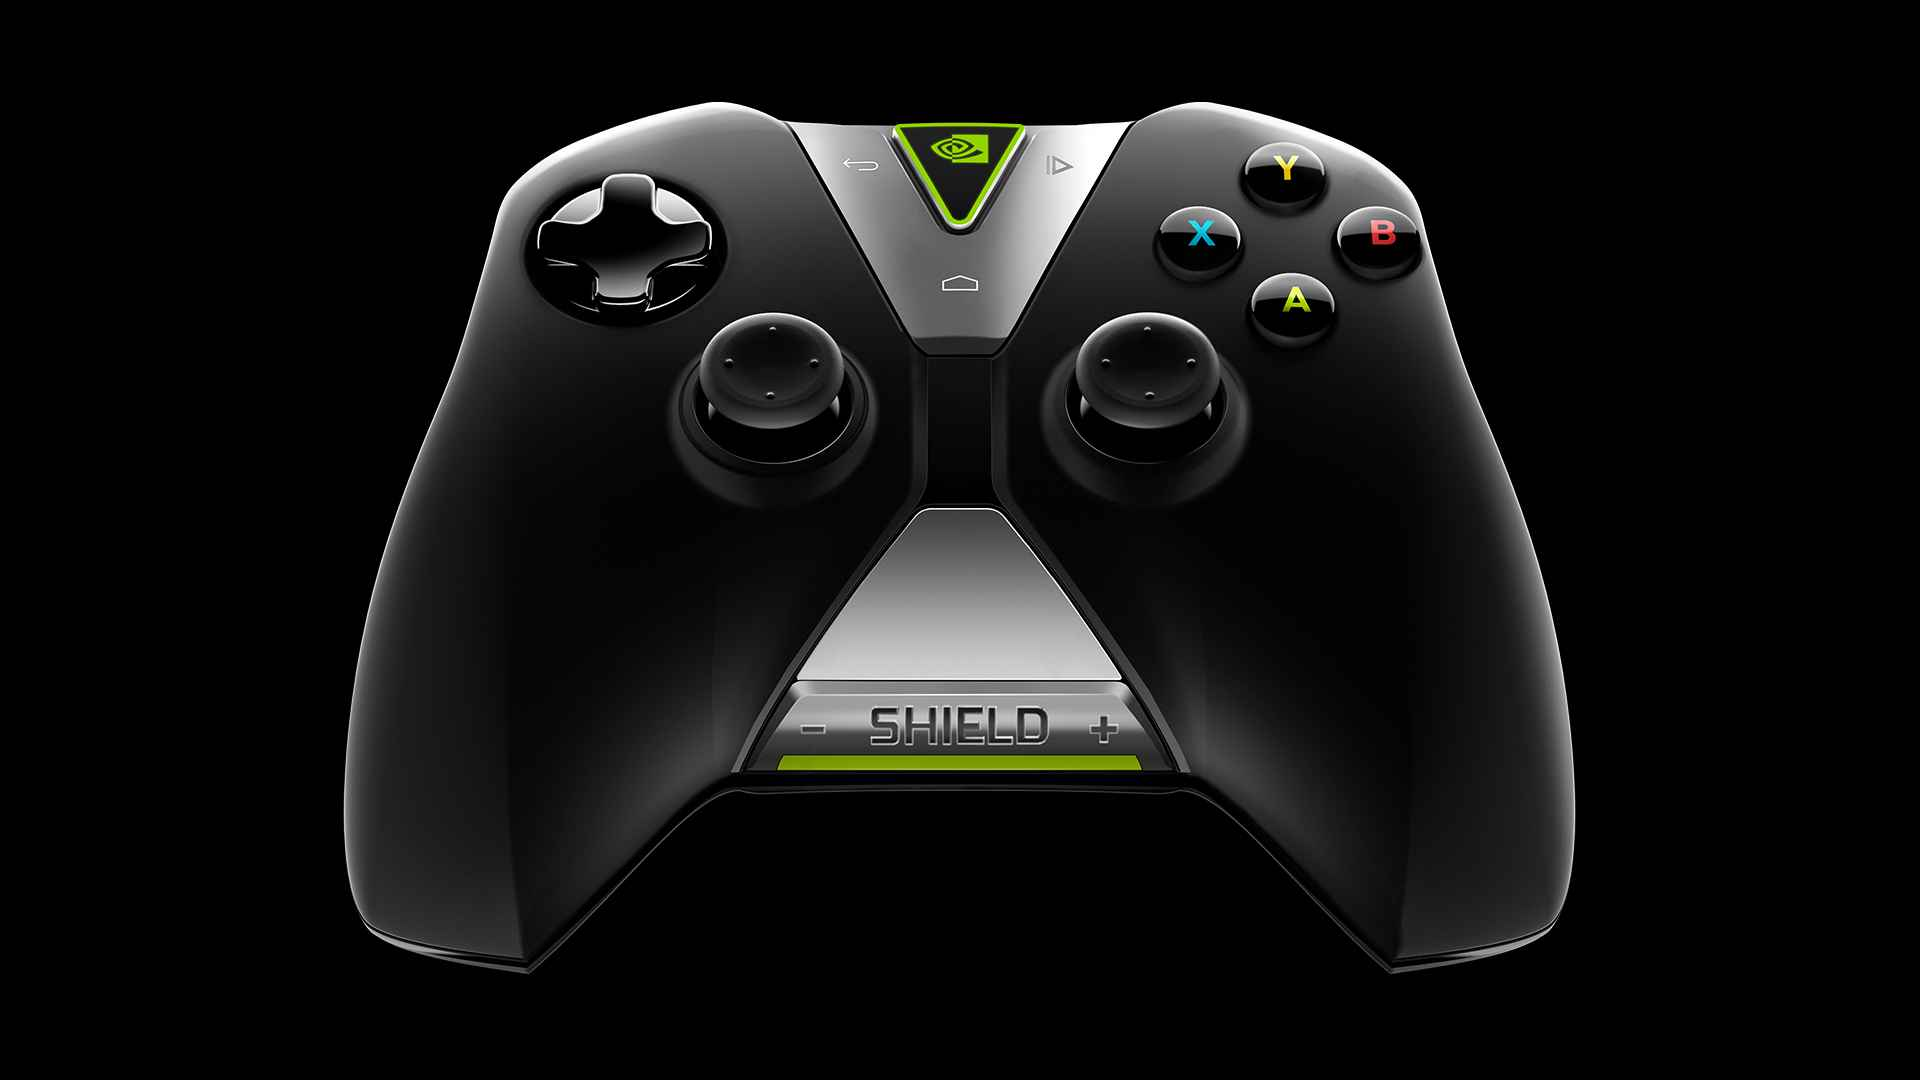 nvidia shield protiv apple TV-a